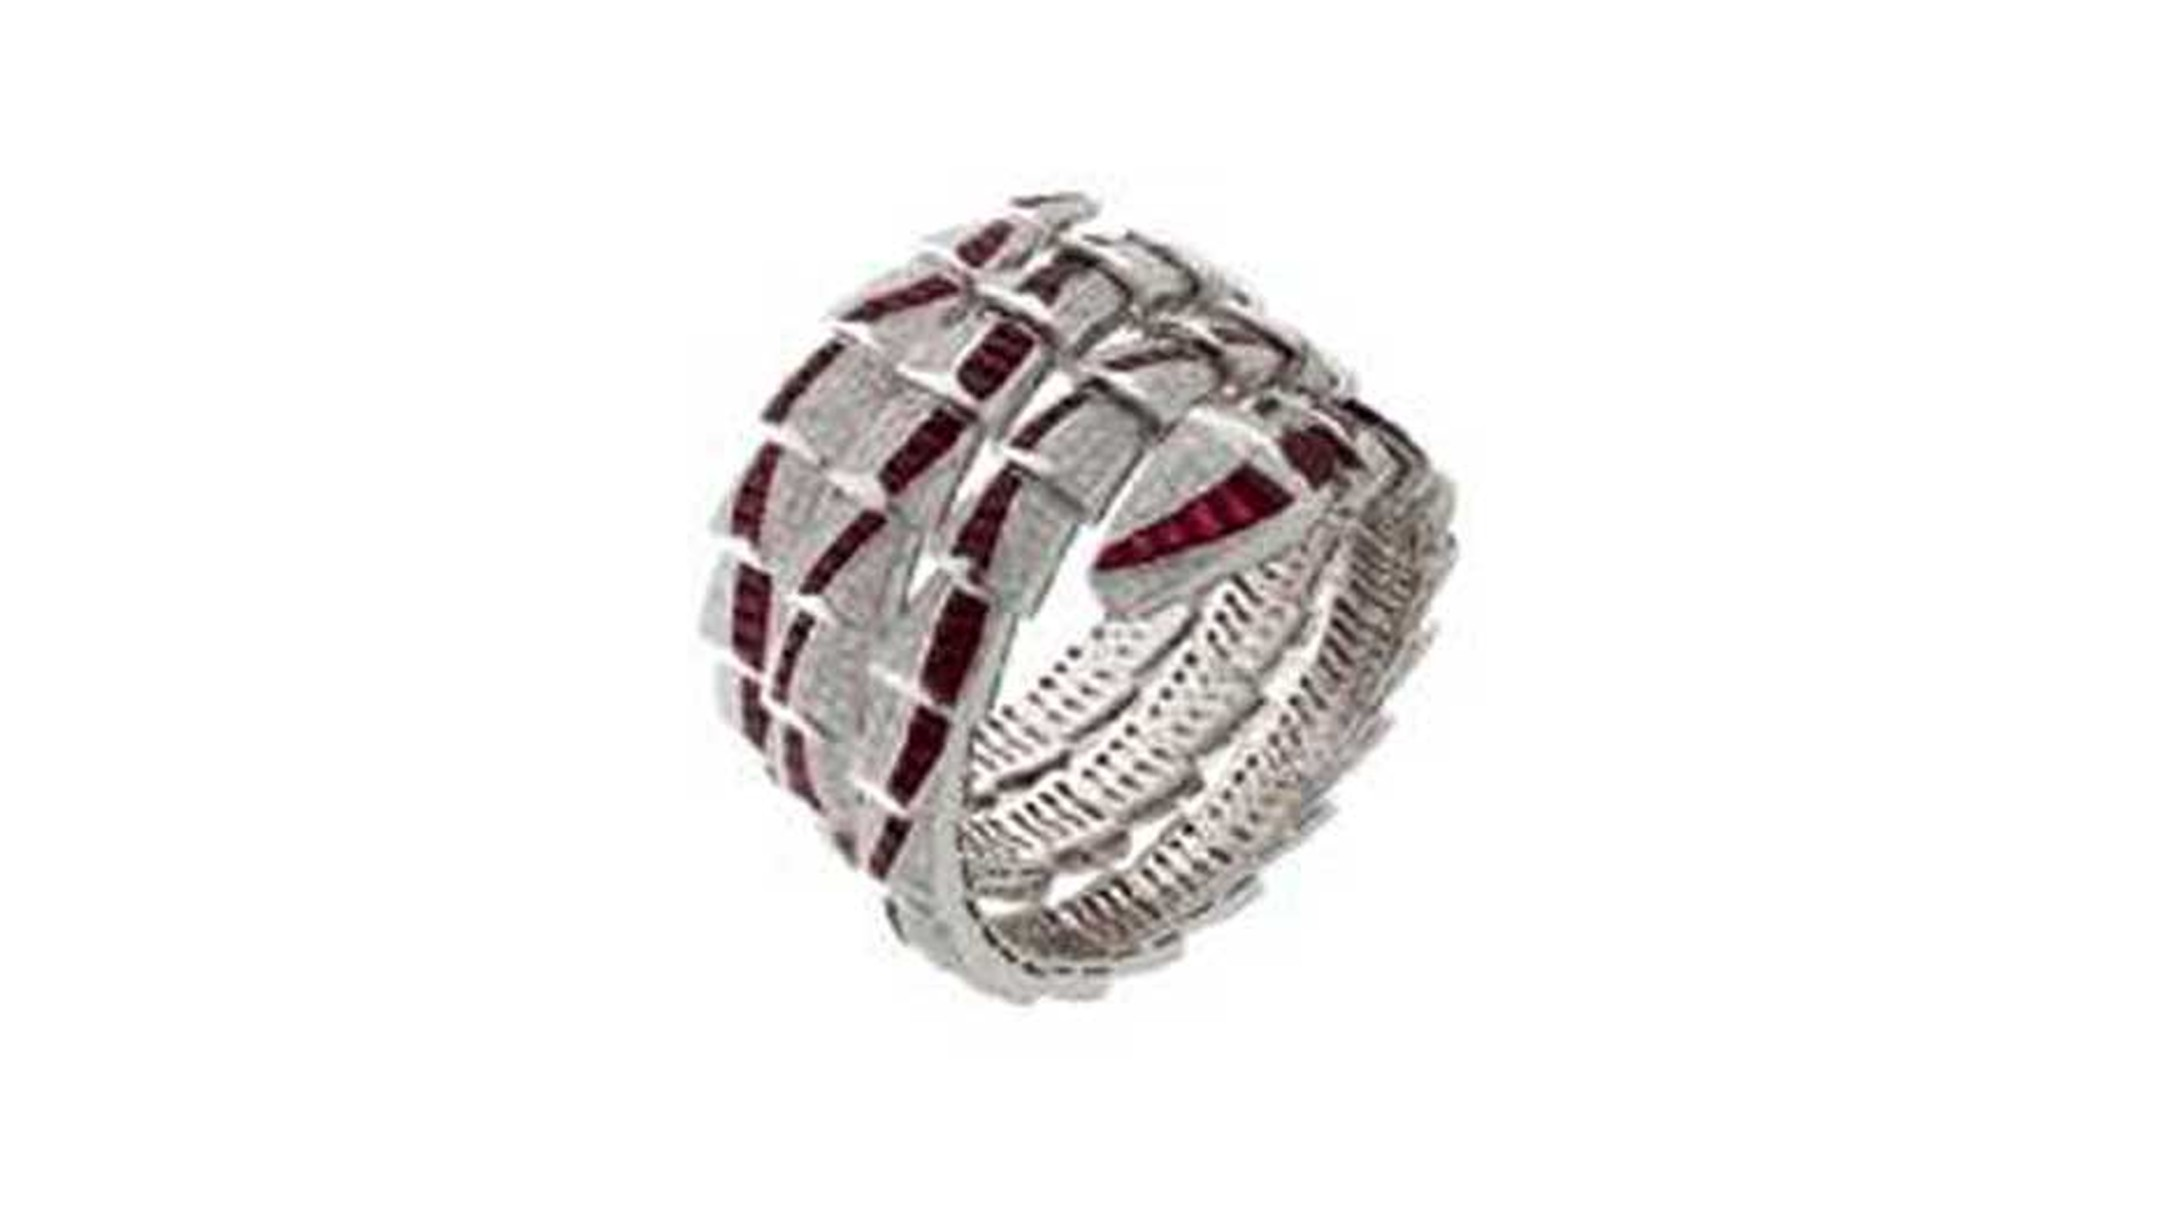 Bulghttp://www.thejewelleryeditor.com/media/52911/SAG-Awards-2015_Bulgari_Ring.jpgari Serpenti high jewelry bracelet with rubies and diamonds worn by Naomi Watts to the 2015 Screen Actors Guild Awards.